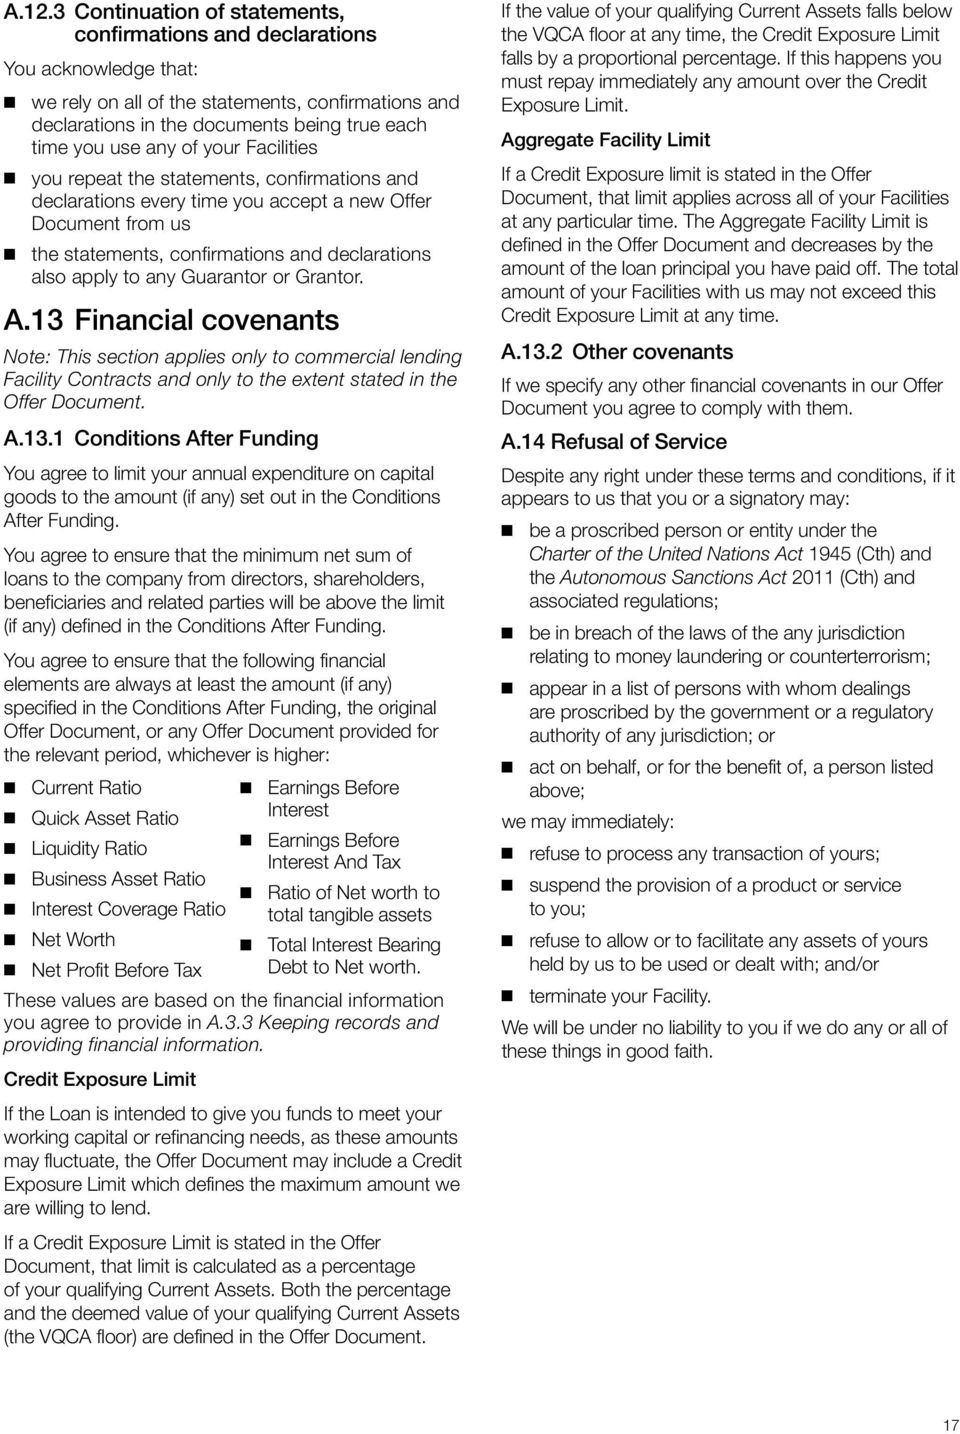 any Guarantor or Grantor. A.13 Financial covenants Note: This section applies only to commercial lending Facility Contracts and only to the extent stated in the Offer Document. A.13.1 Conditions After Funding You agree to limit your aual expenditure on capital goods to the amount (if any) set out in the Conditions After Funding.